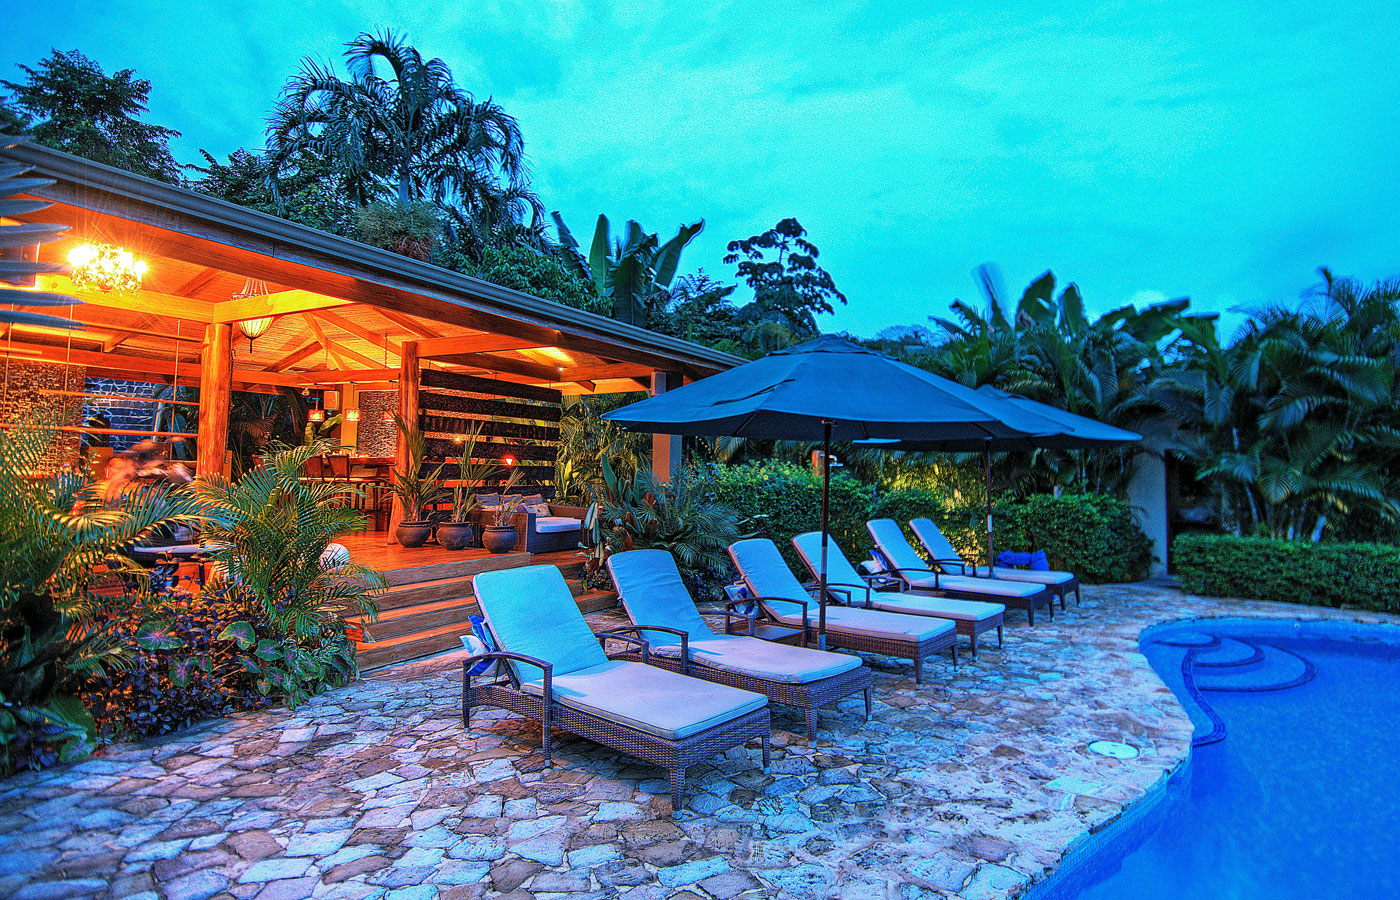 The pool at Casa Chameleon, Nicoya, Costa Rica